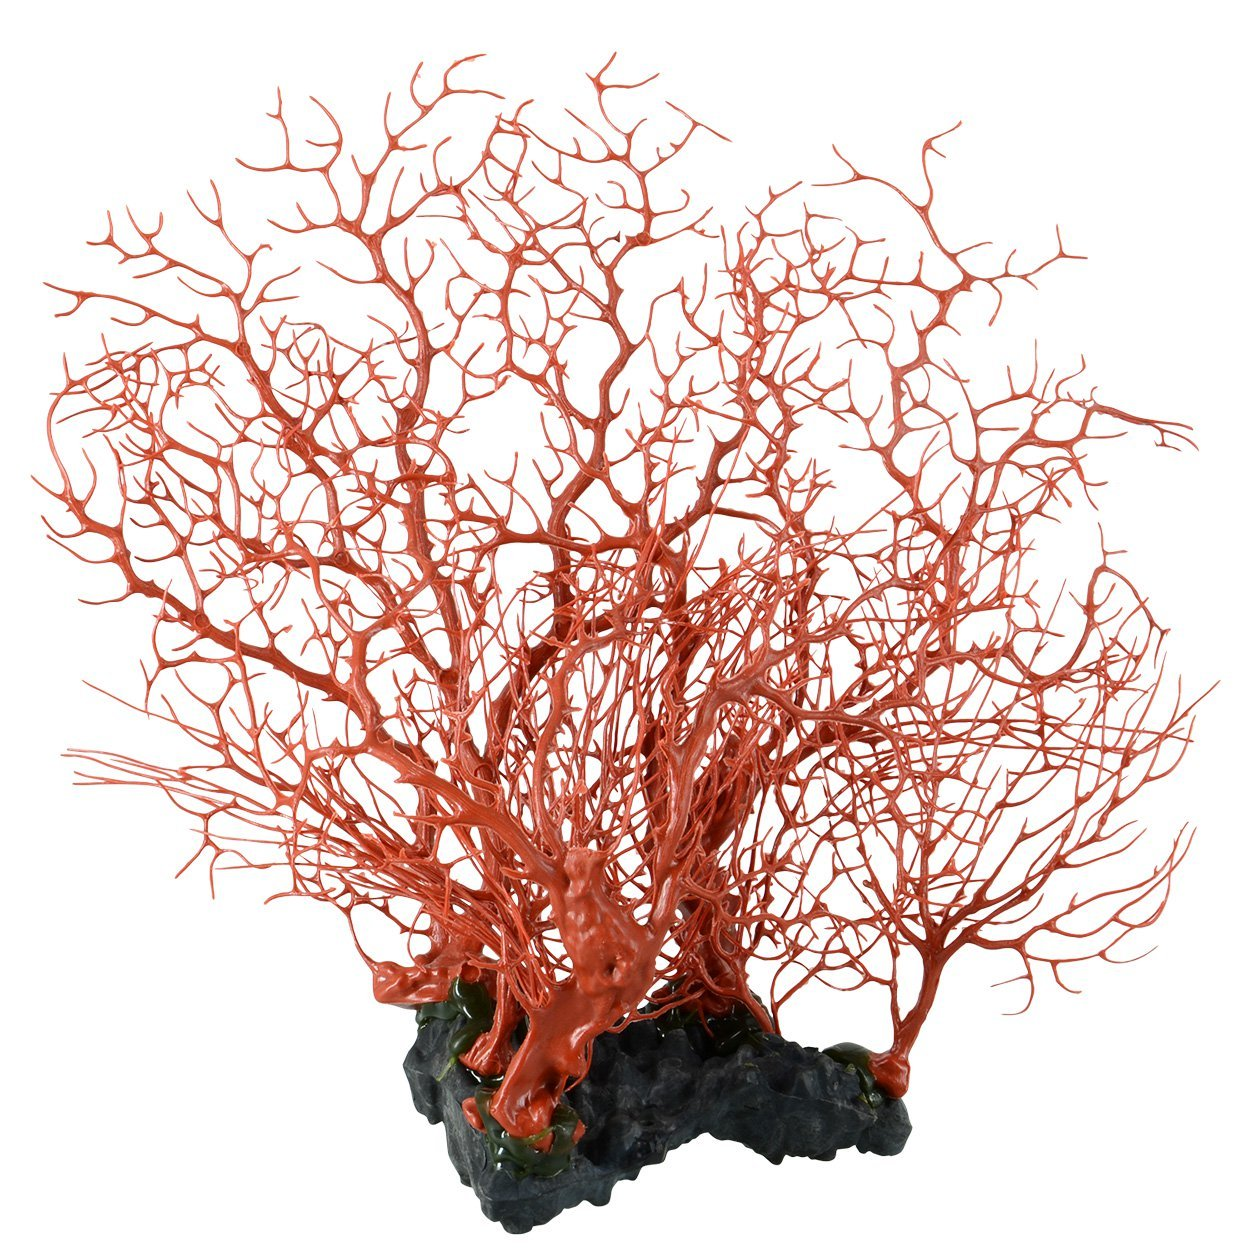 Underwater Treasures 65330 Sea Fan Cluster Coral by Underwater Treasures